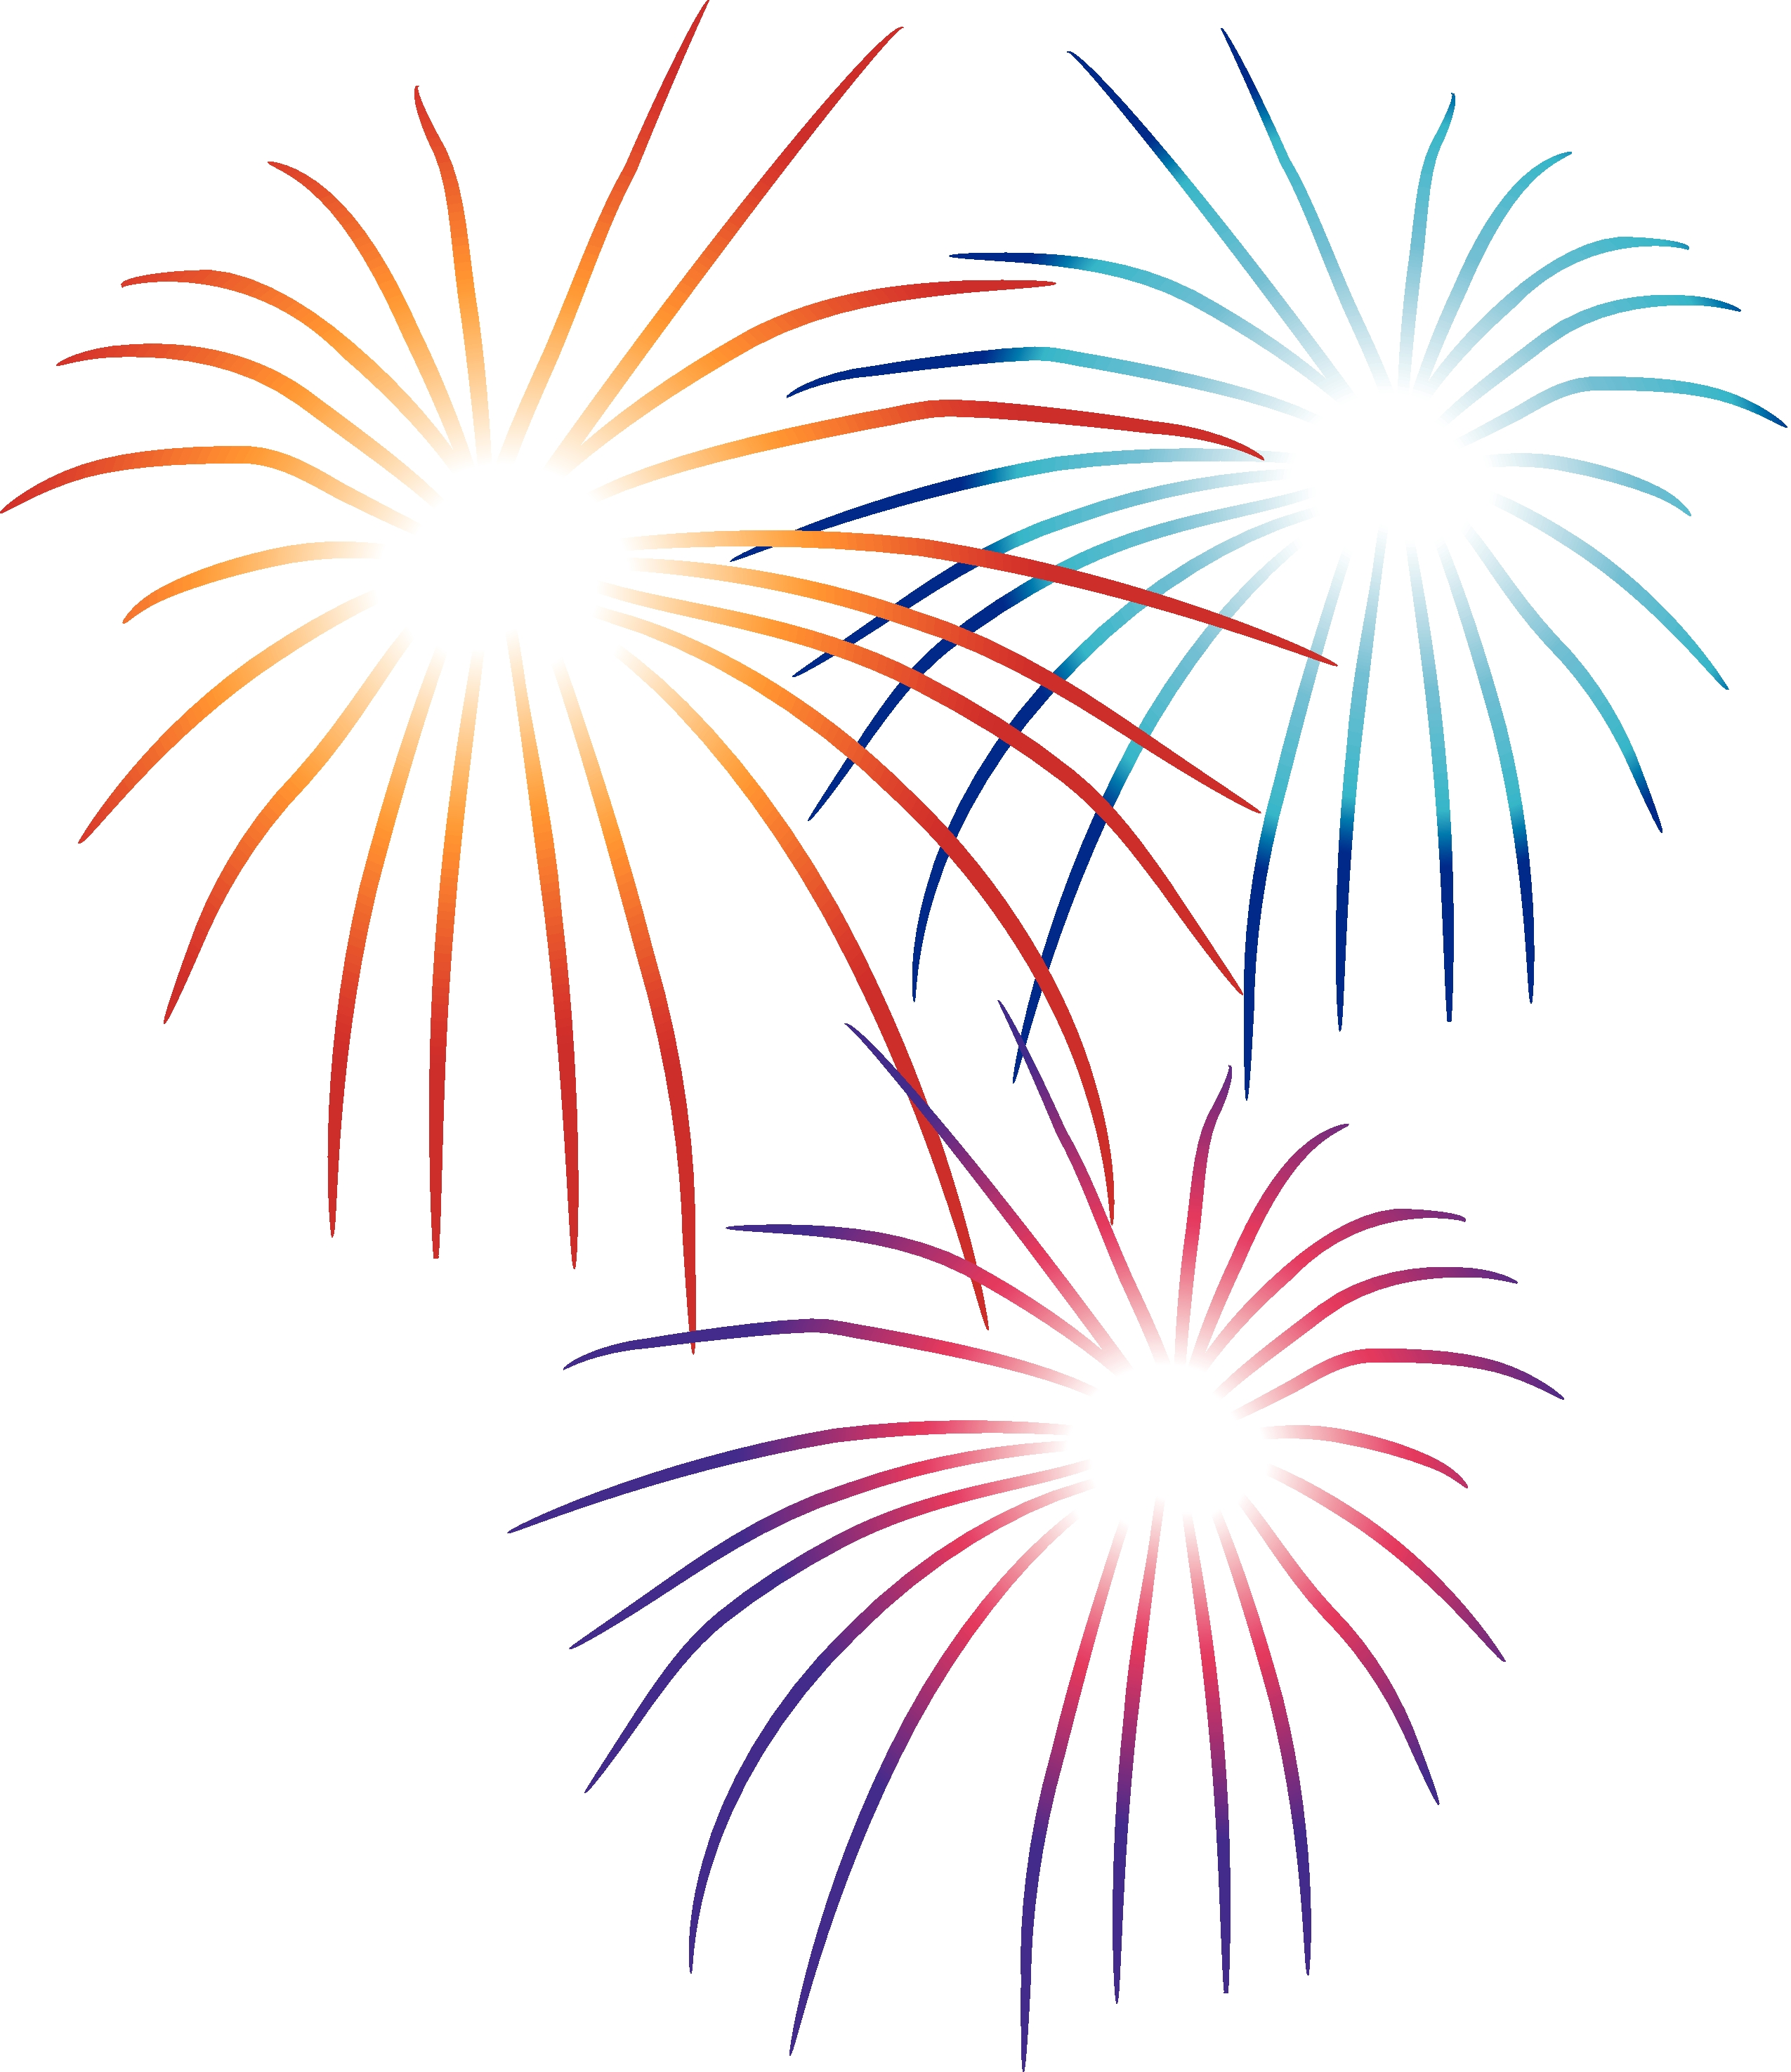 fireworks silhouette clipart best free fireworks clipart animated free fireworks clipart animated